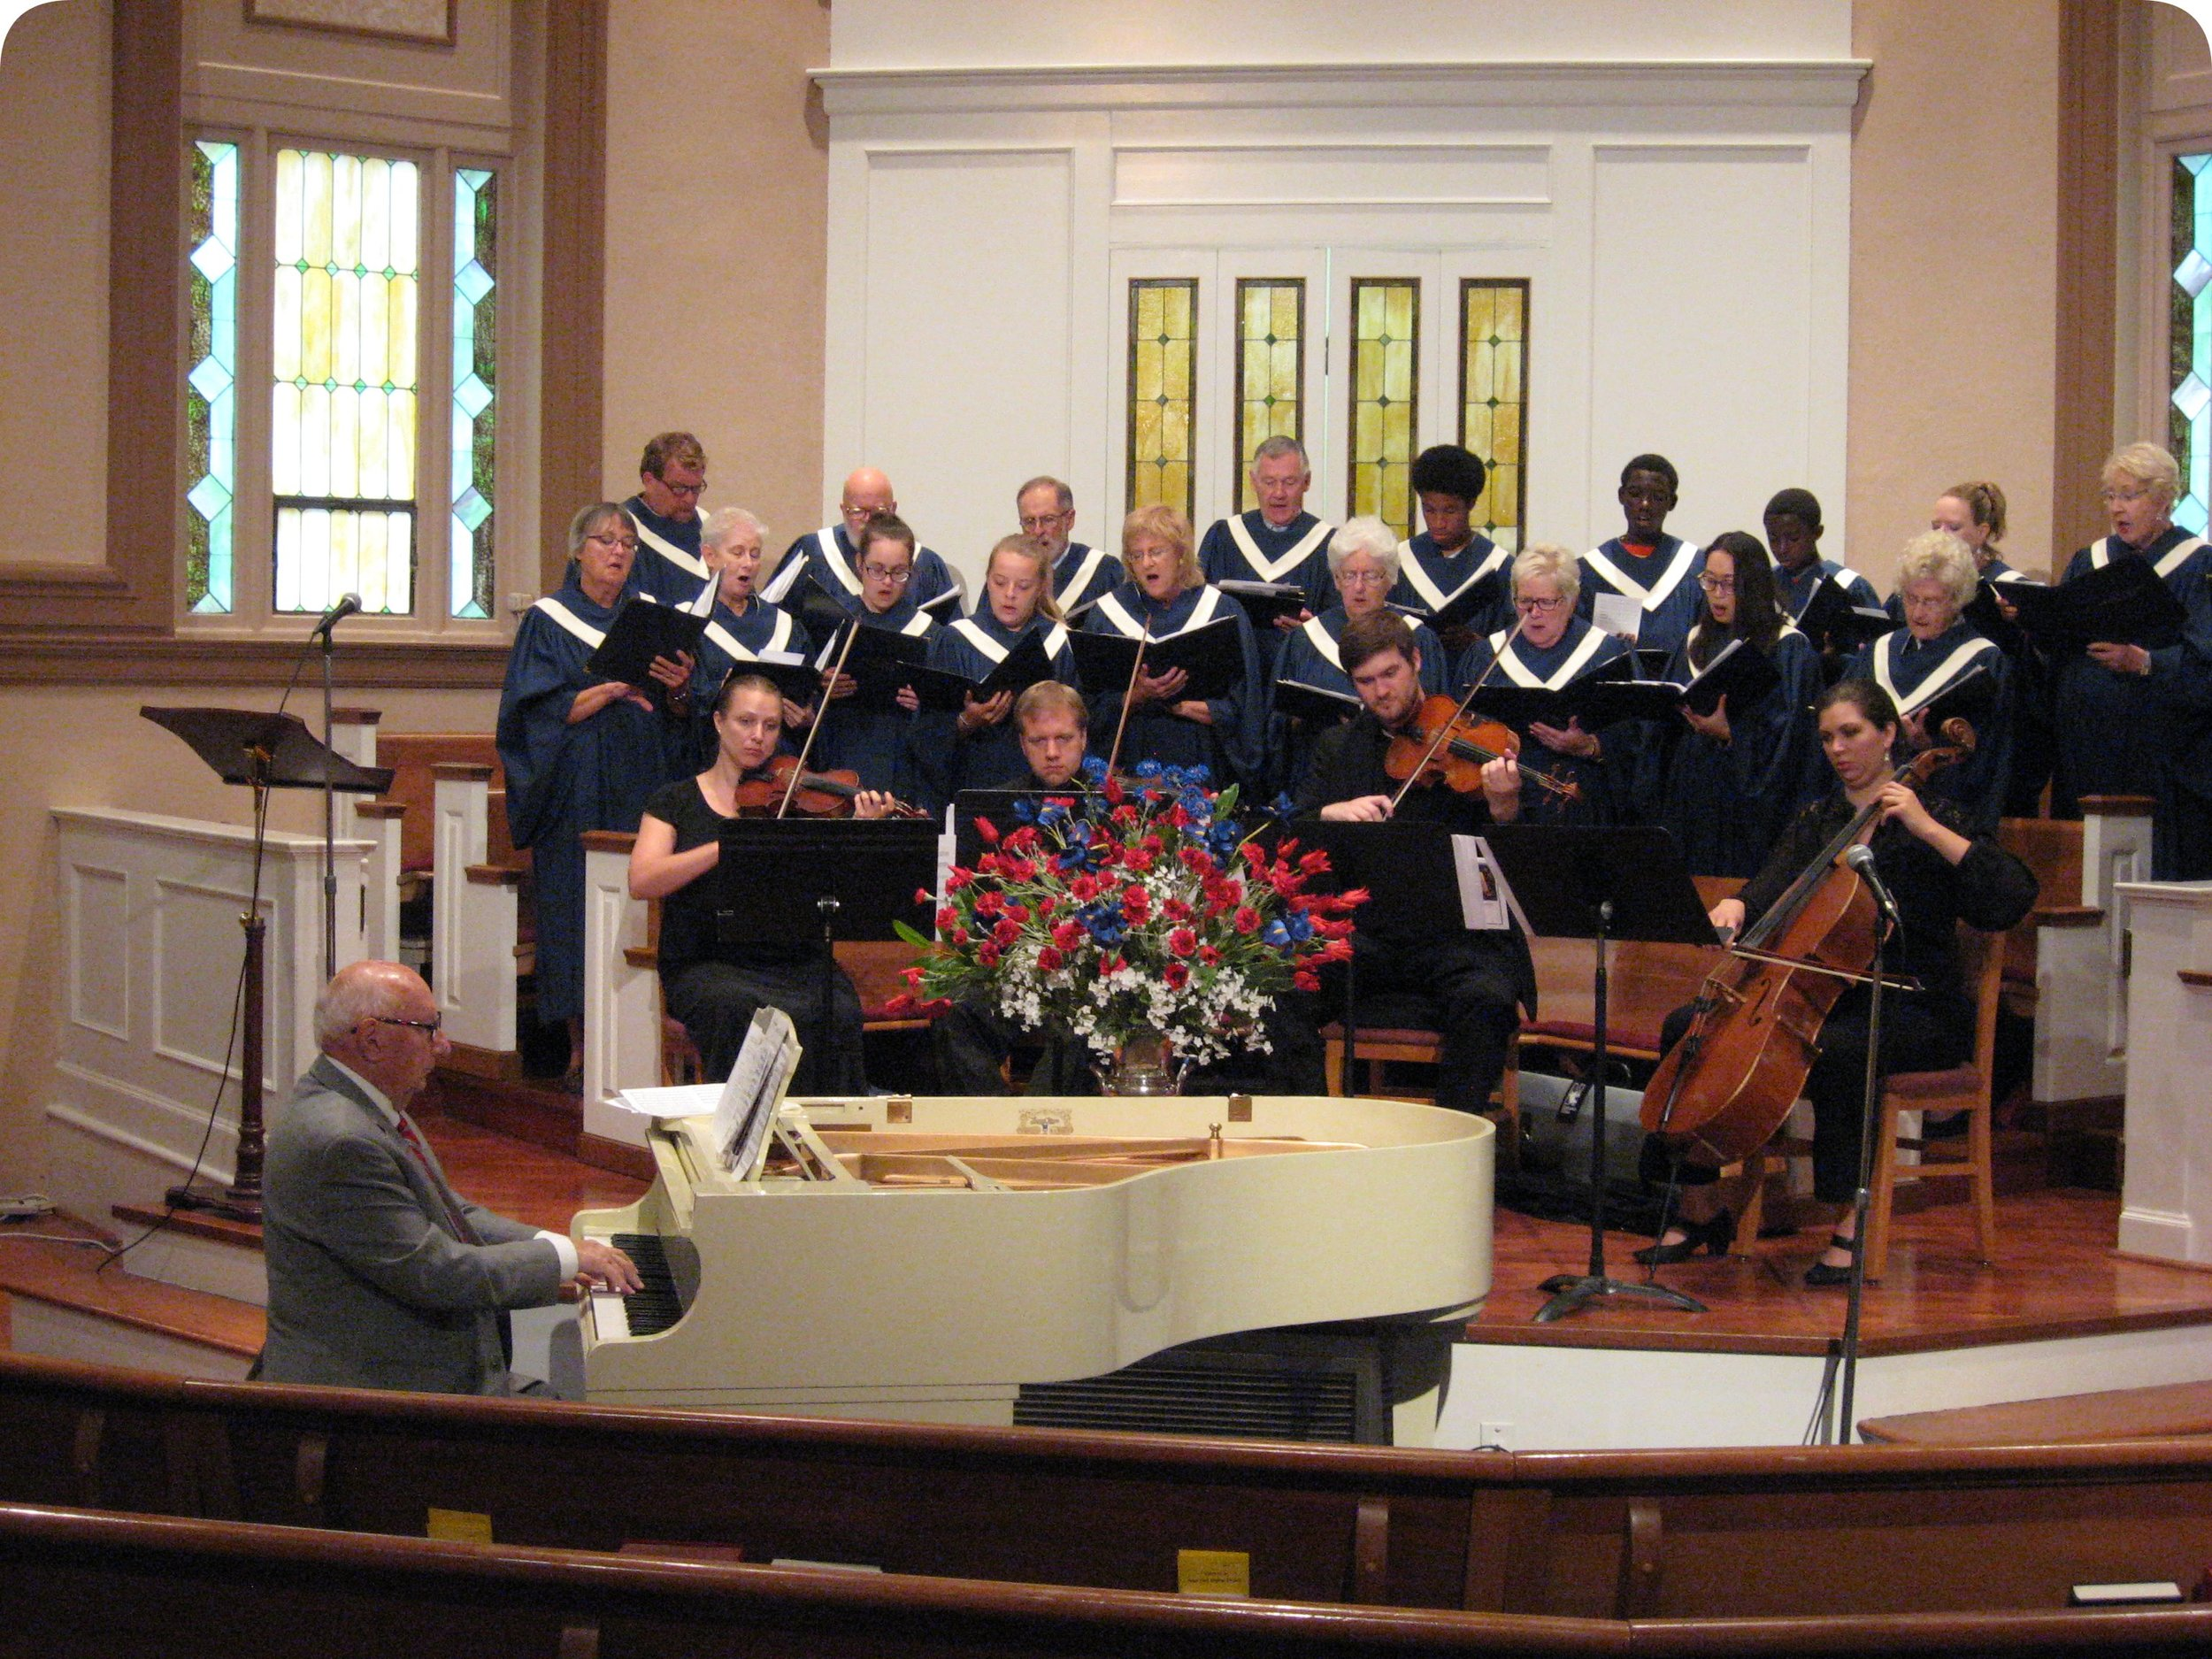 Music - The music ministry of Deer Park Baptist Church has a long, rich history, centering first on the musical needs of worship. The Chancel Choir and the organ often take the primary role is leadership during Sunday morning worship services. Worship music covers a wide gamut of styles, according to the gifts of those who participate in it.